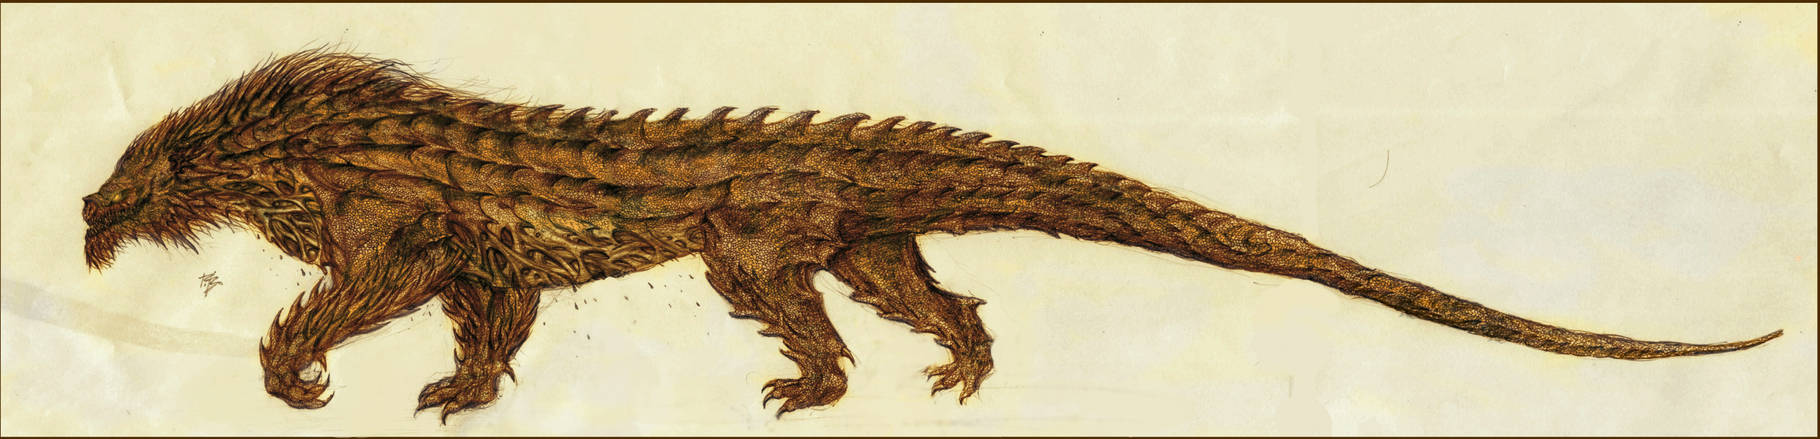 Glaurung unleashed by RobertBugan